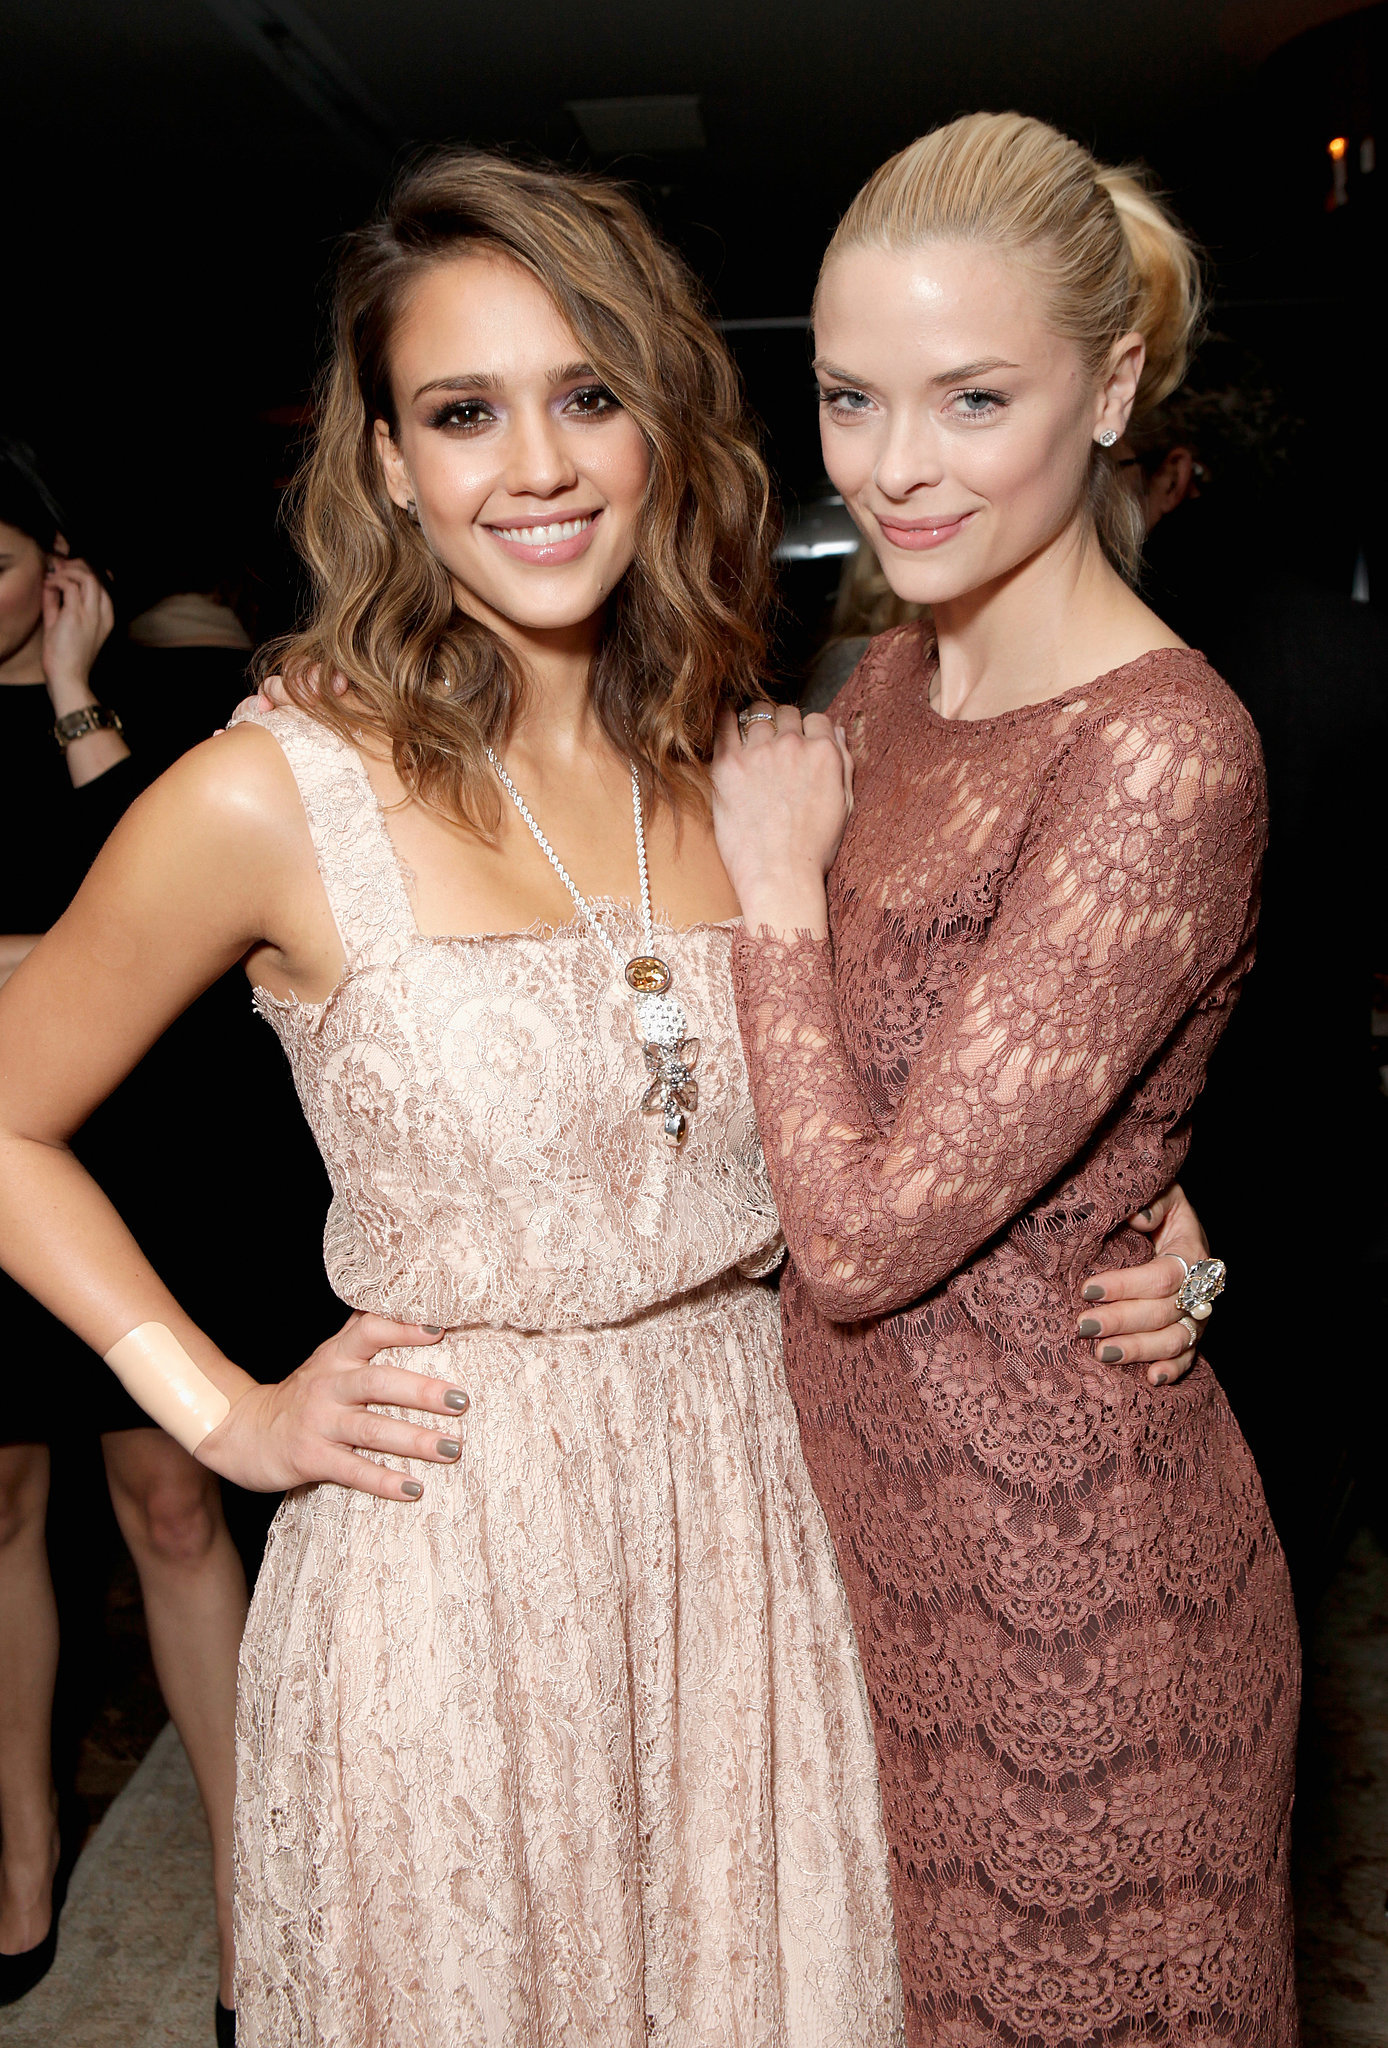 Photo of Jaime King & her friend actress  Jessica Alba - United States